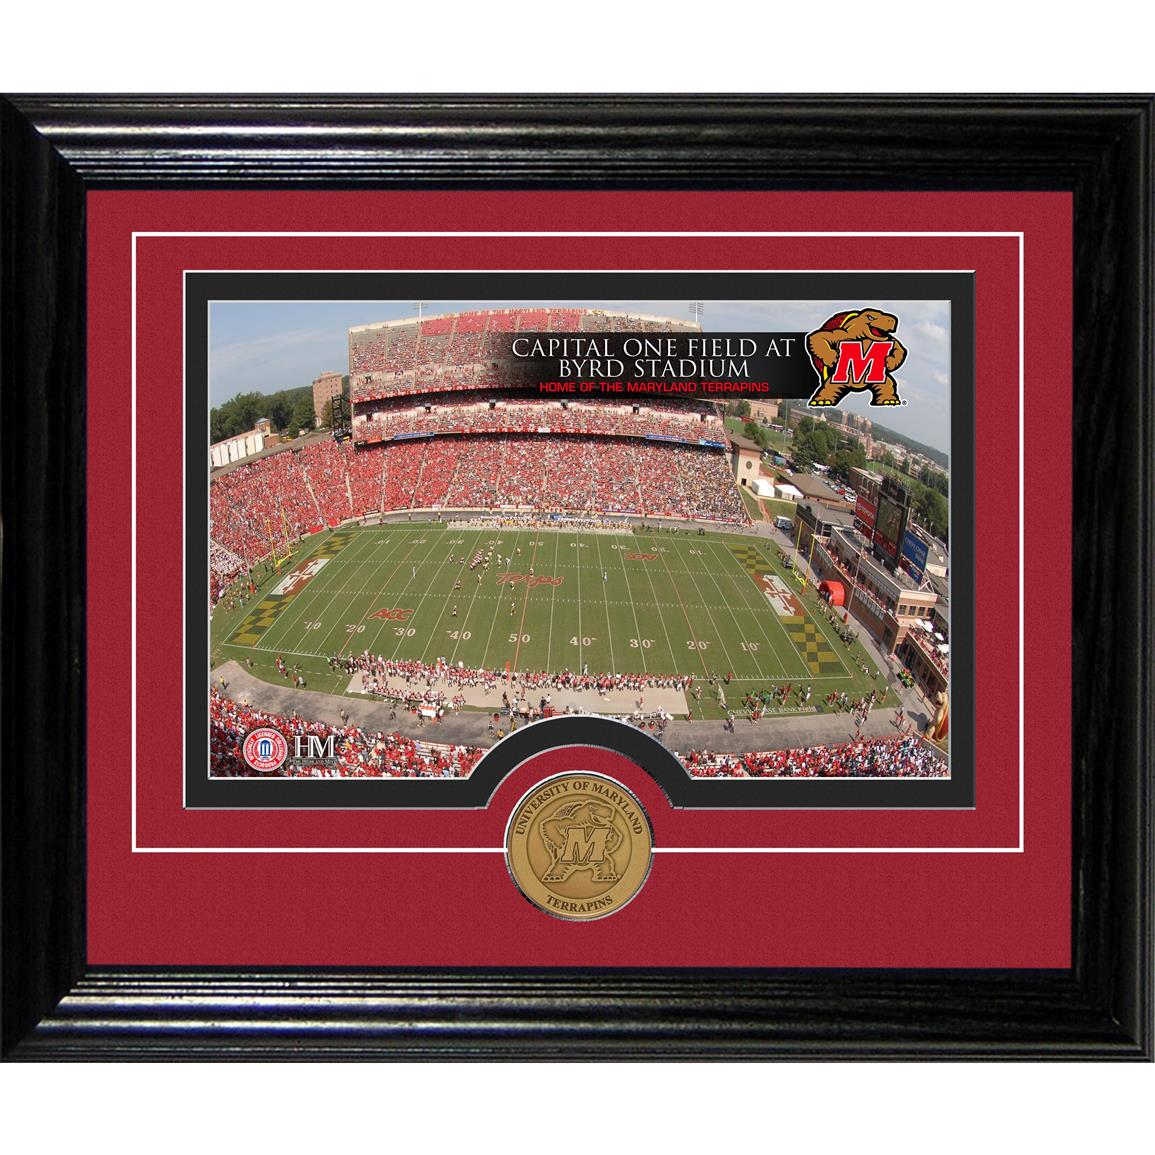 Highland Mint® University of Maryland Capital One Field at Byrd Stadium Desktop Photo Mint